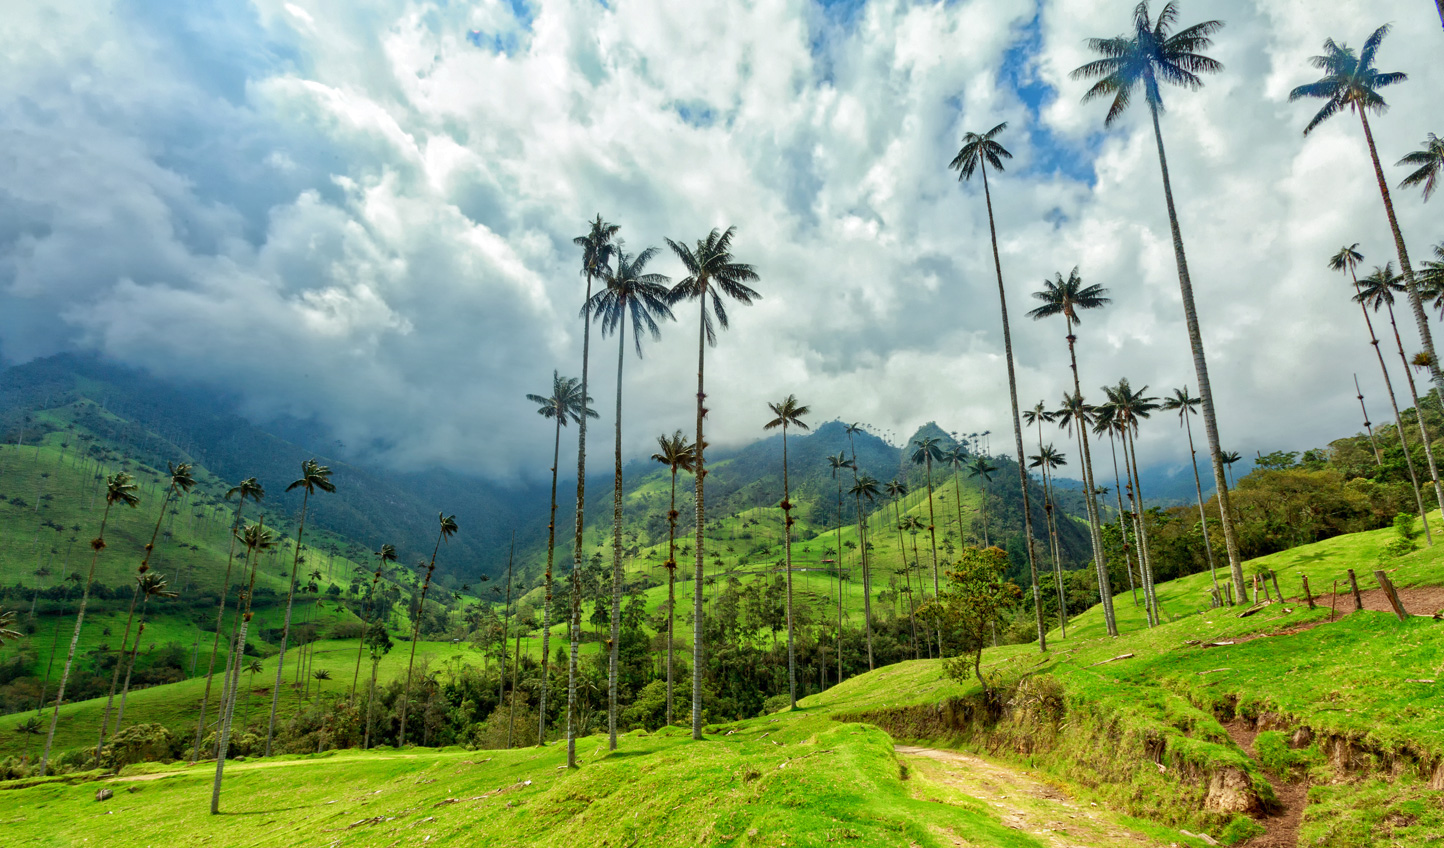 The 60 foot palm trees famous to Cafetero